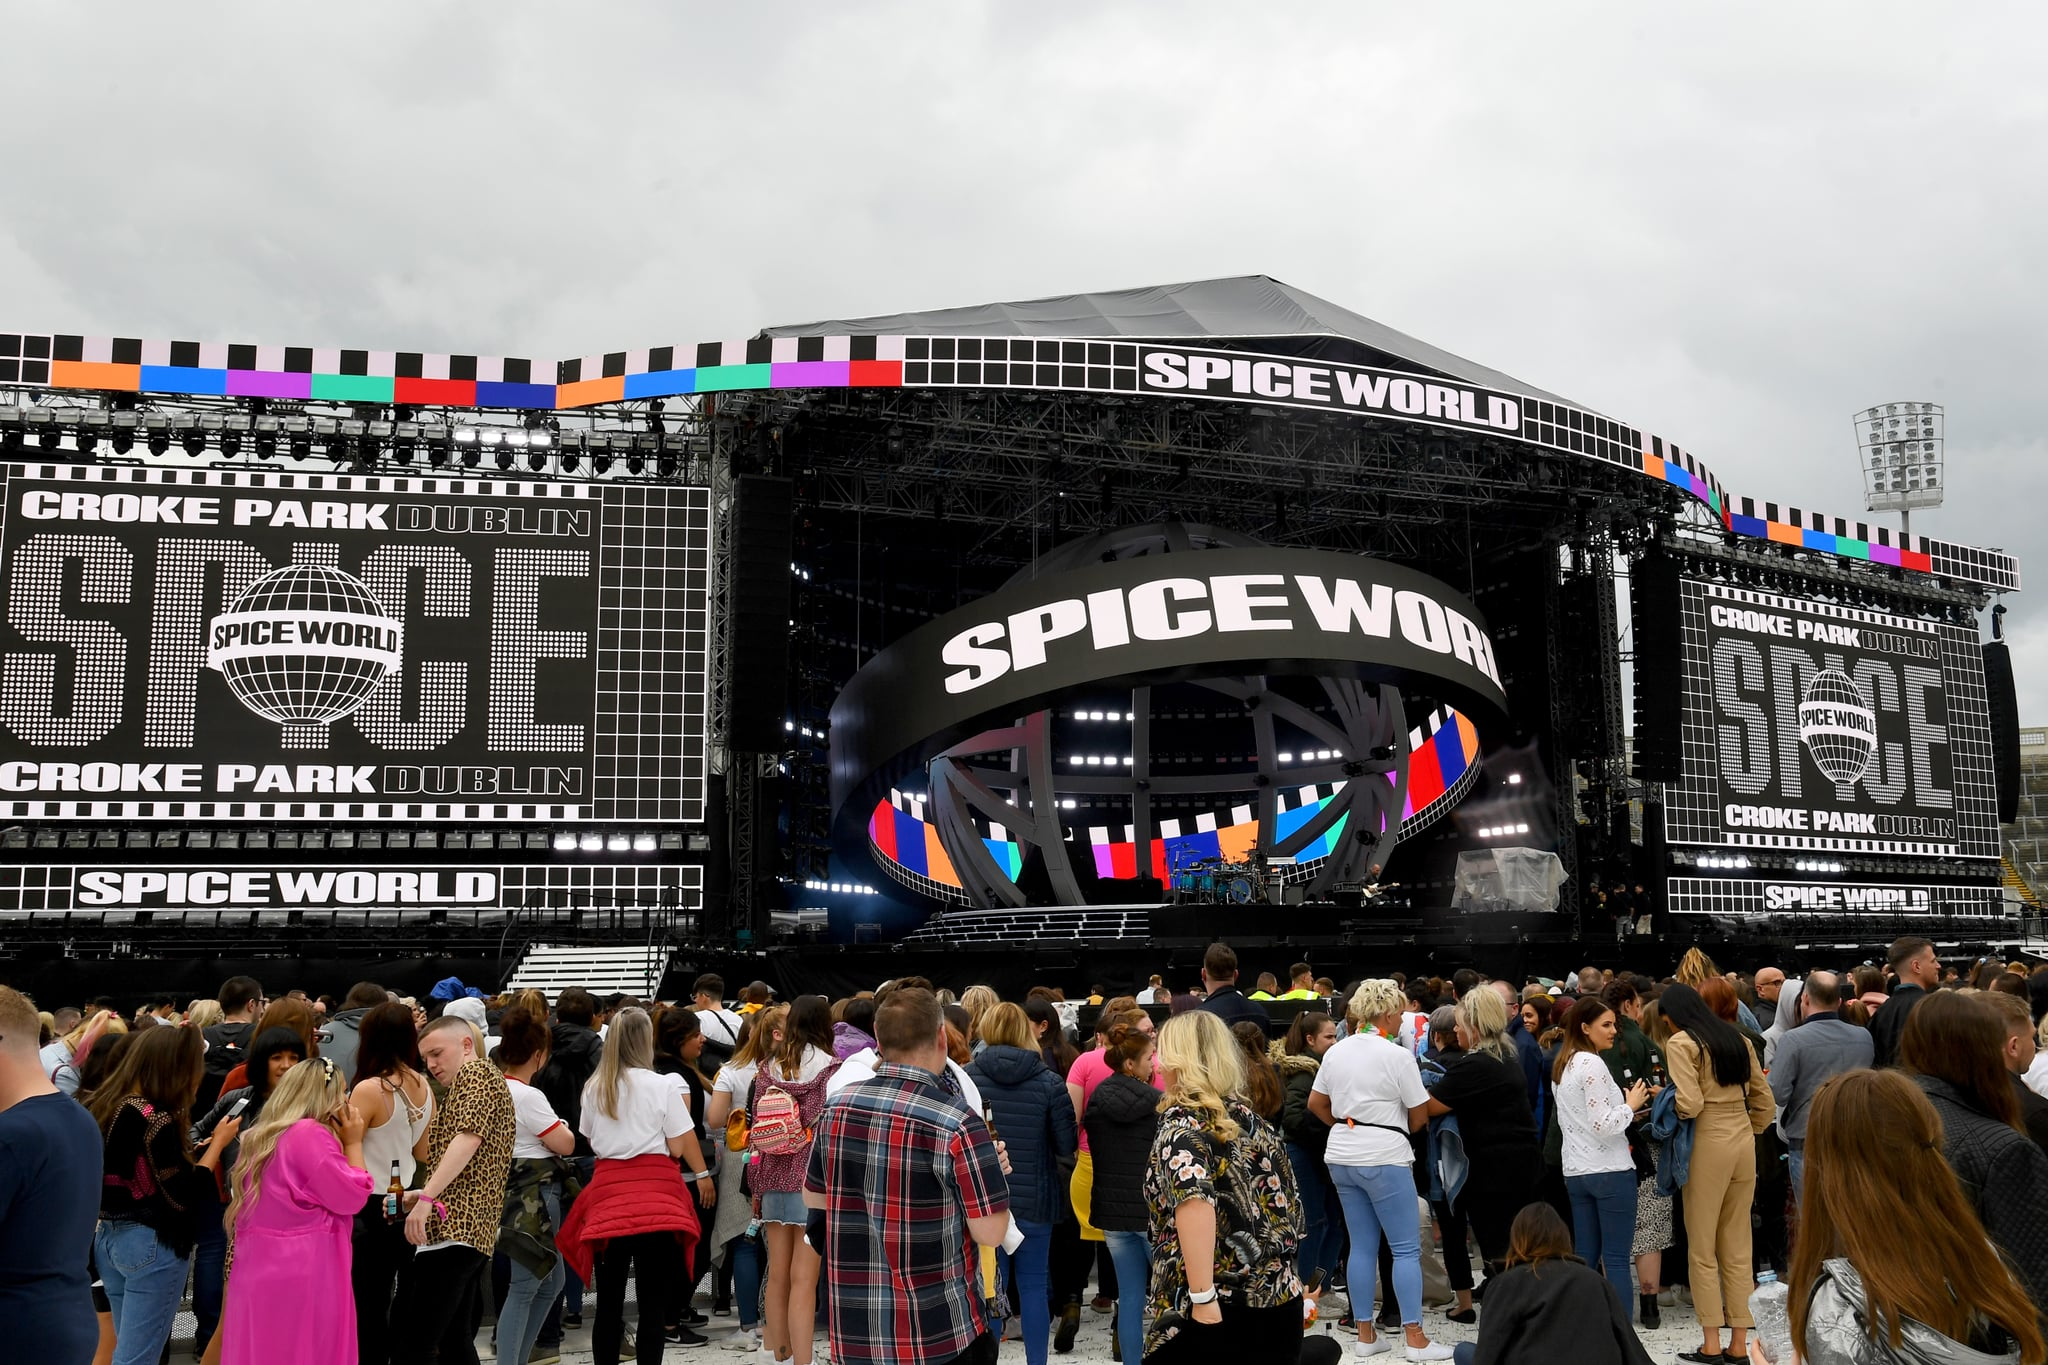 DUBLIN, IRELAND - MAY 24: Fans arrive to watch The Spice Girls perform on the first night of the bands tour at Croke Park on May 24, 2019 in Dublin, Ireland. (Photo by Dave J Hogan/Getty Images)